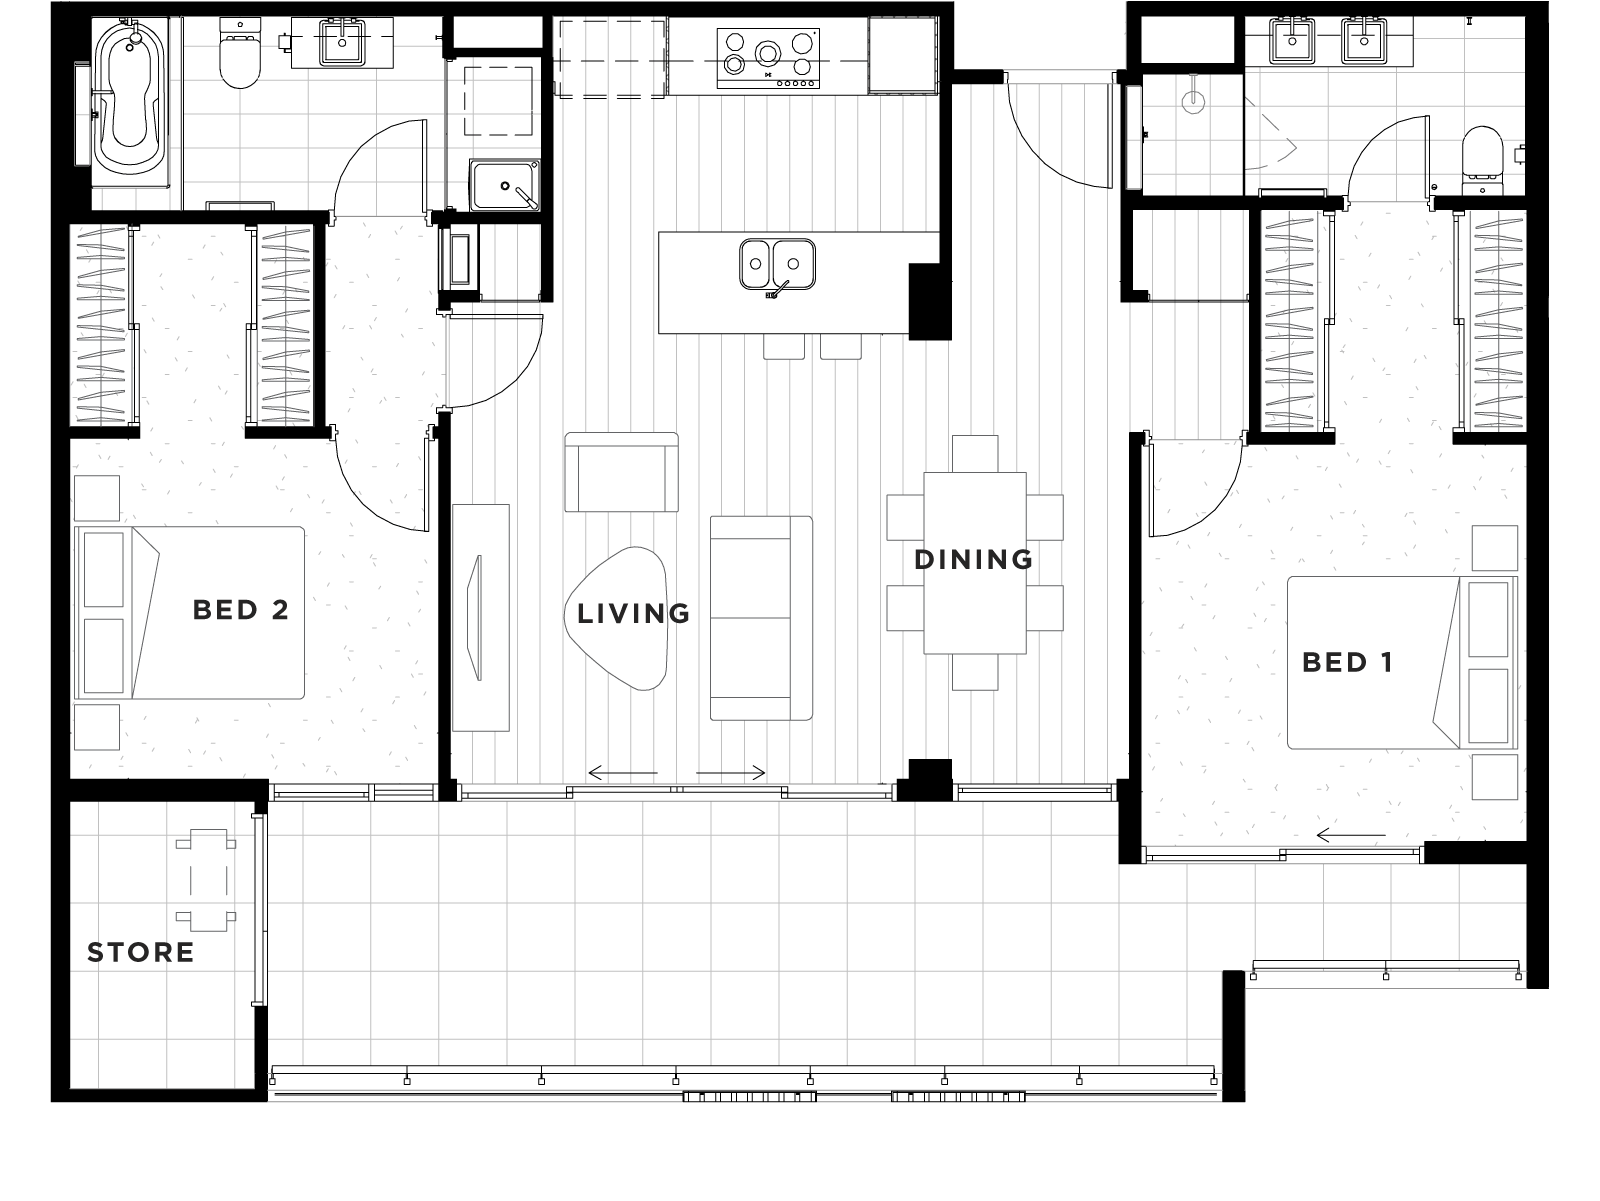 Apartment 20 Floorplan